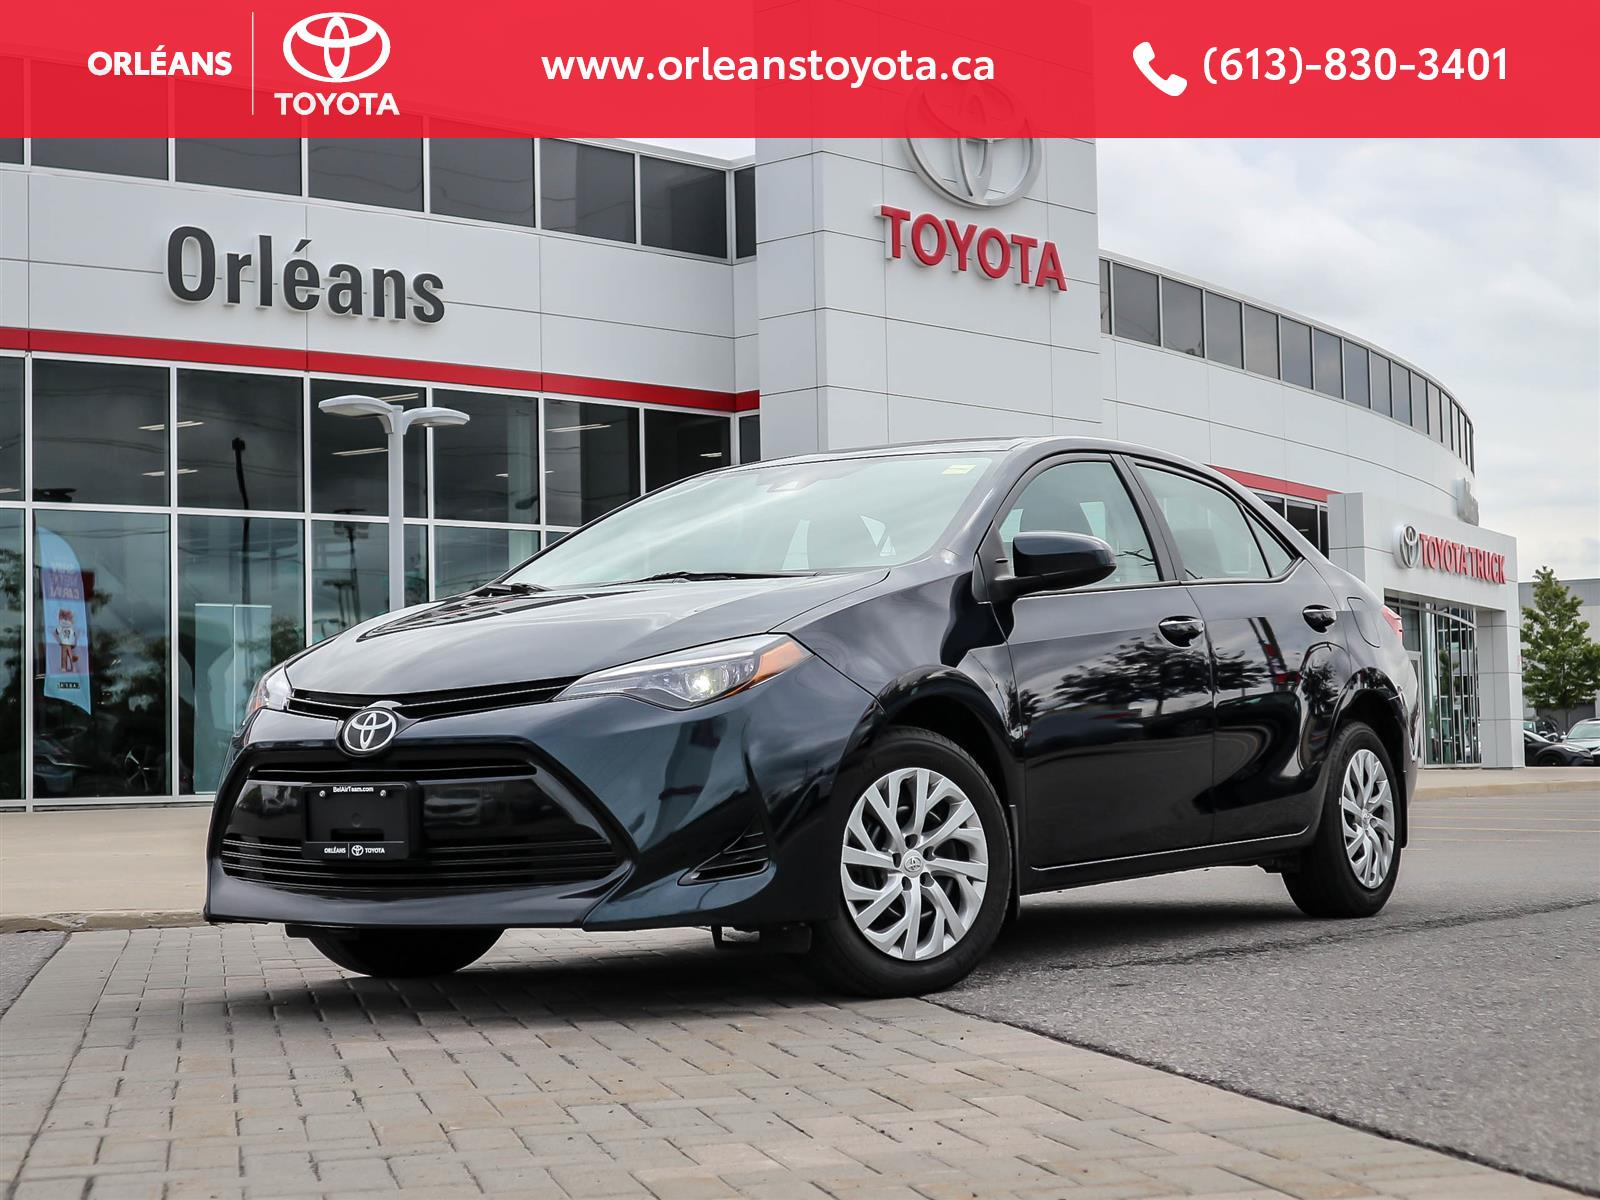 2017 Toyota Corolla at Orleans Toyota